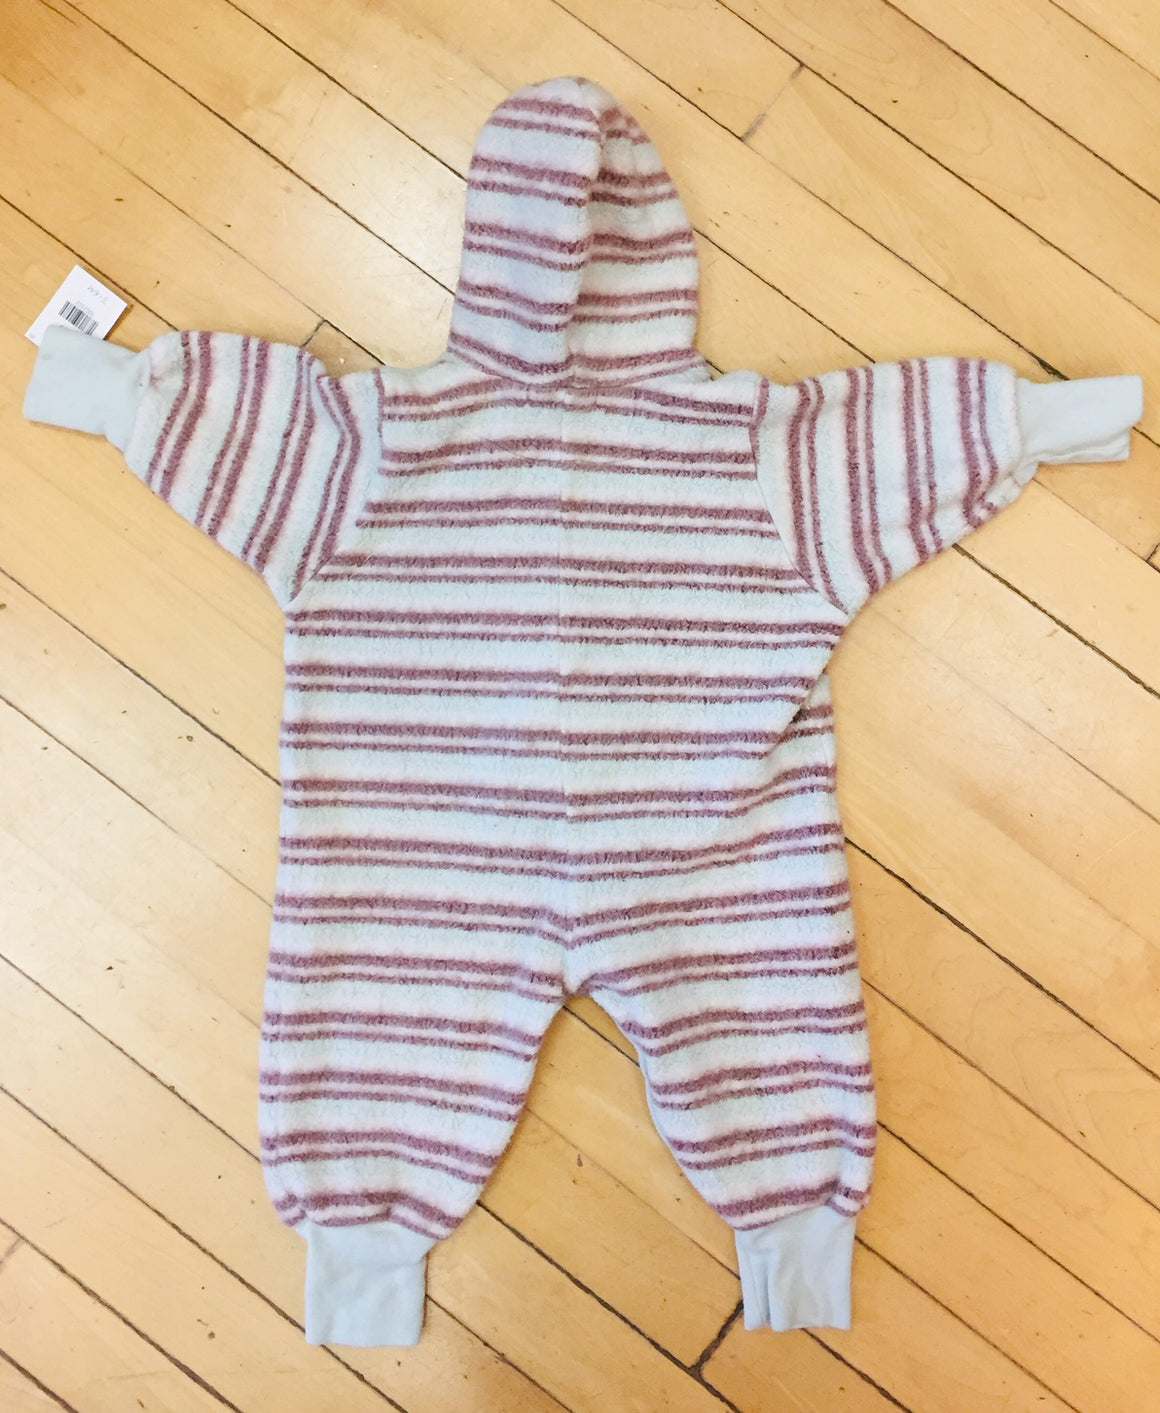 Under The Nile Organic Cotton Bunting, Size 3-6 Months, Gently Used